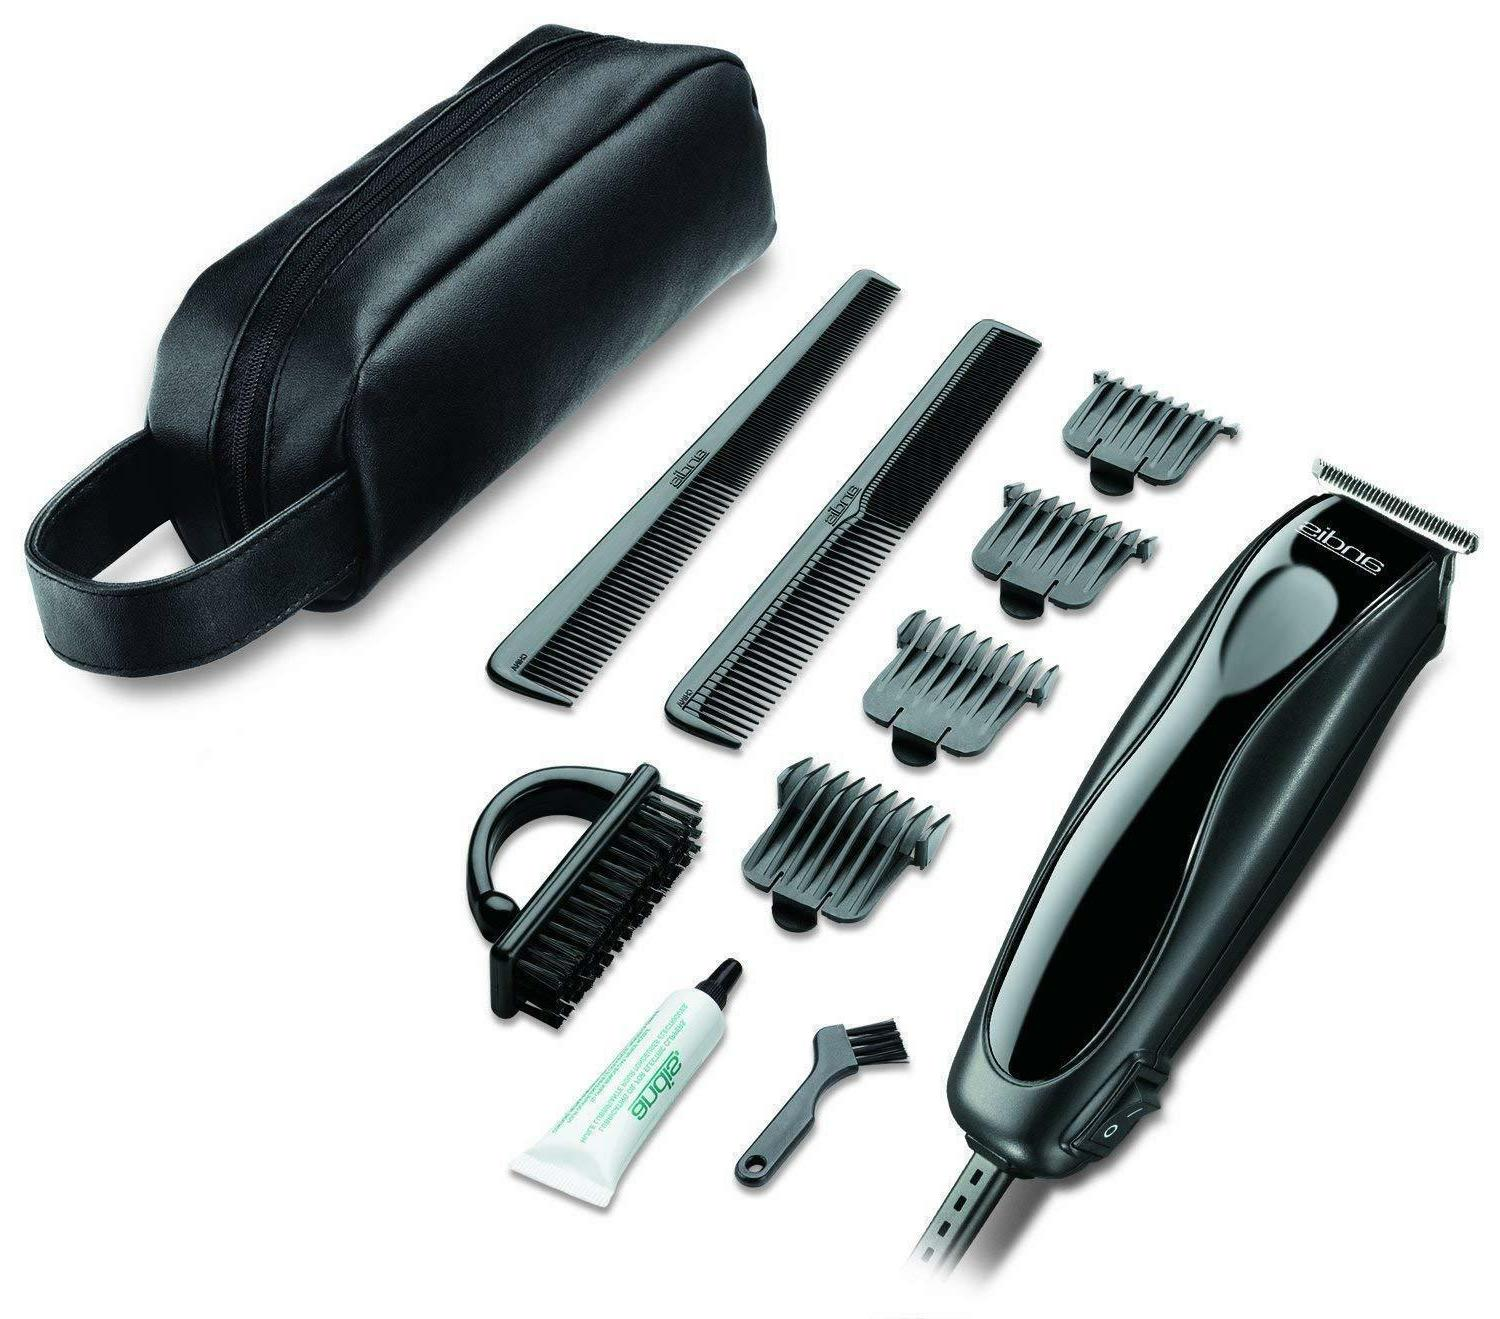 Andis T Outliner Trimmer Barber Salon Cut Clippers Grooming US